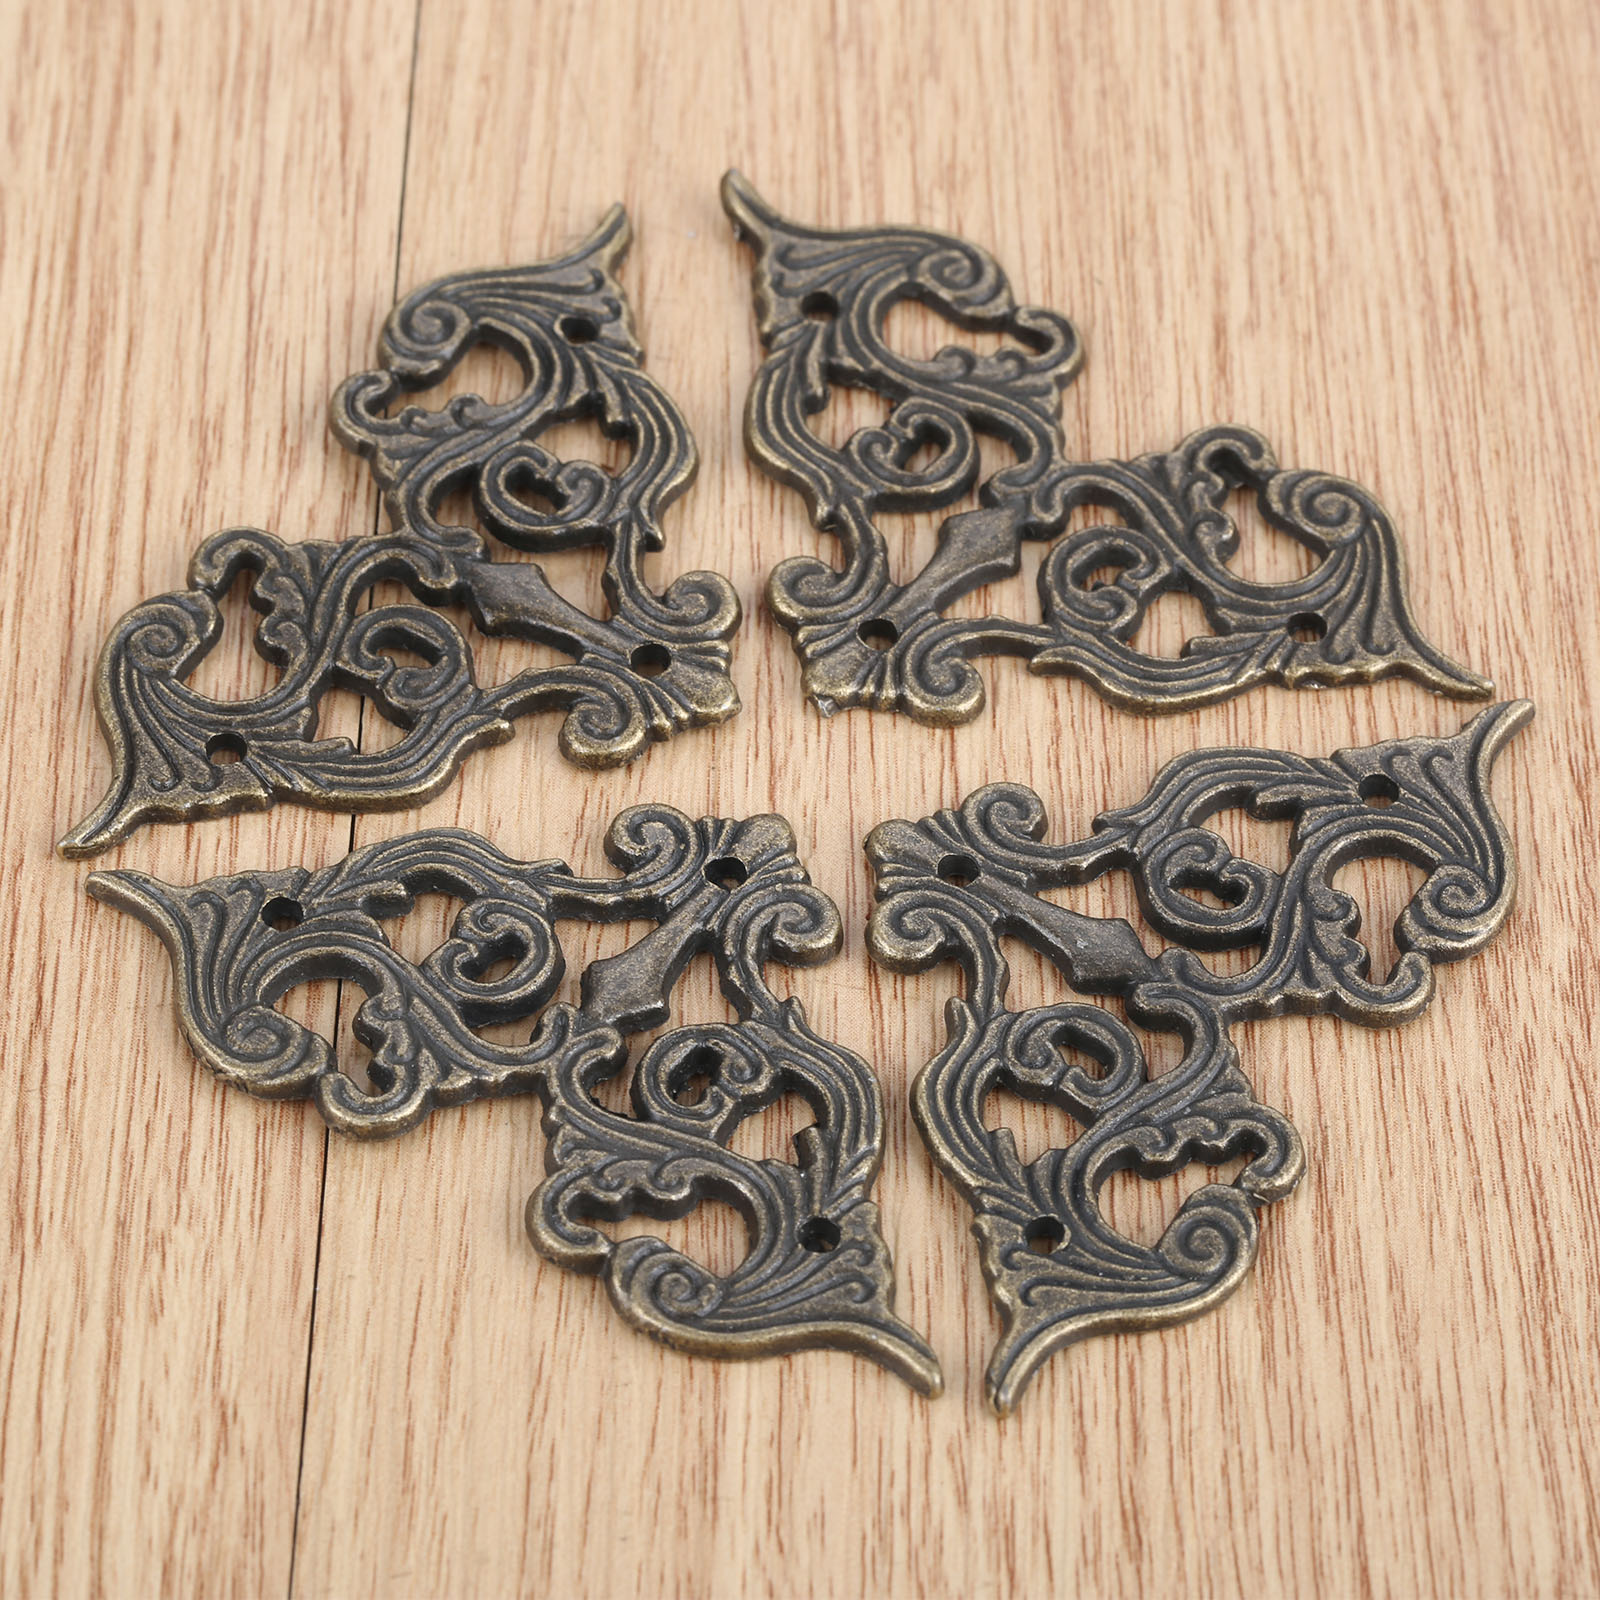 4Pcs Antique Furniture Corner Brackets Jewelry Wine Case Box Book Scrapbook Album Corner Protector Furniture Decor 62*35mm